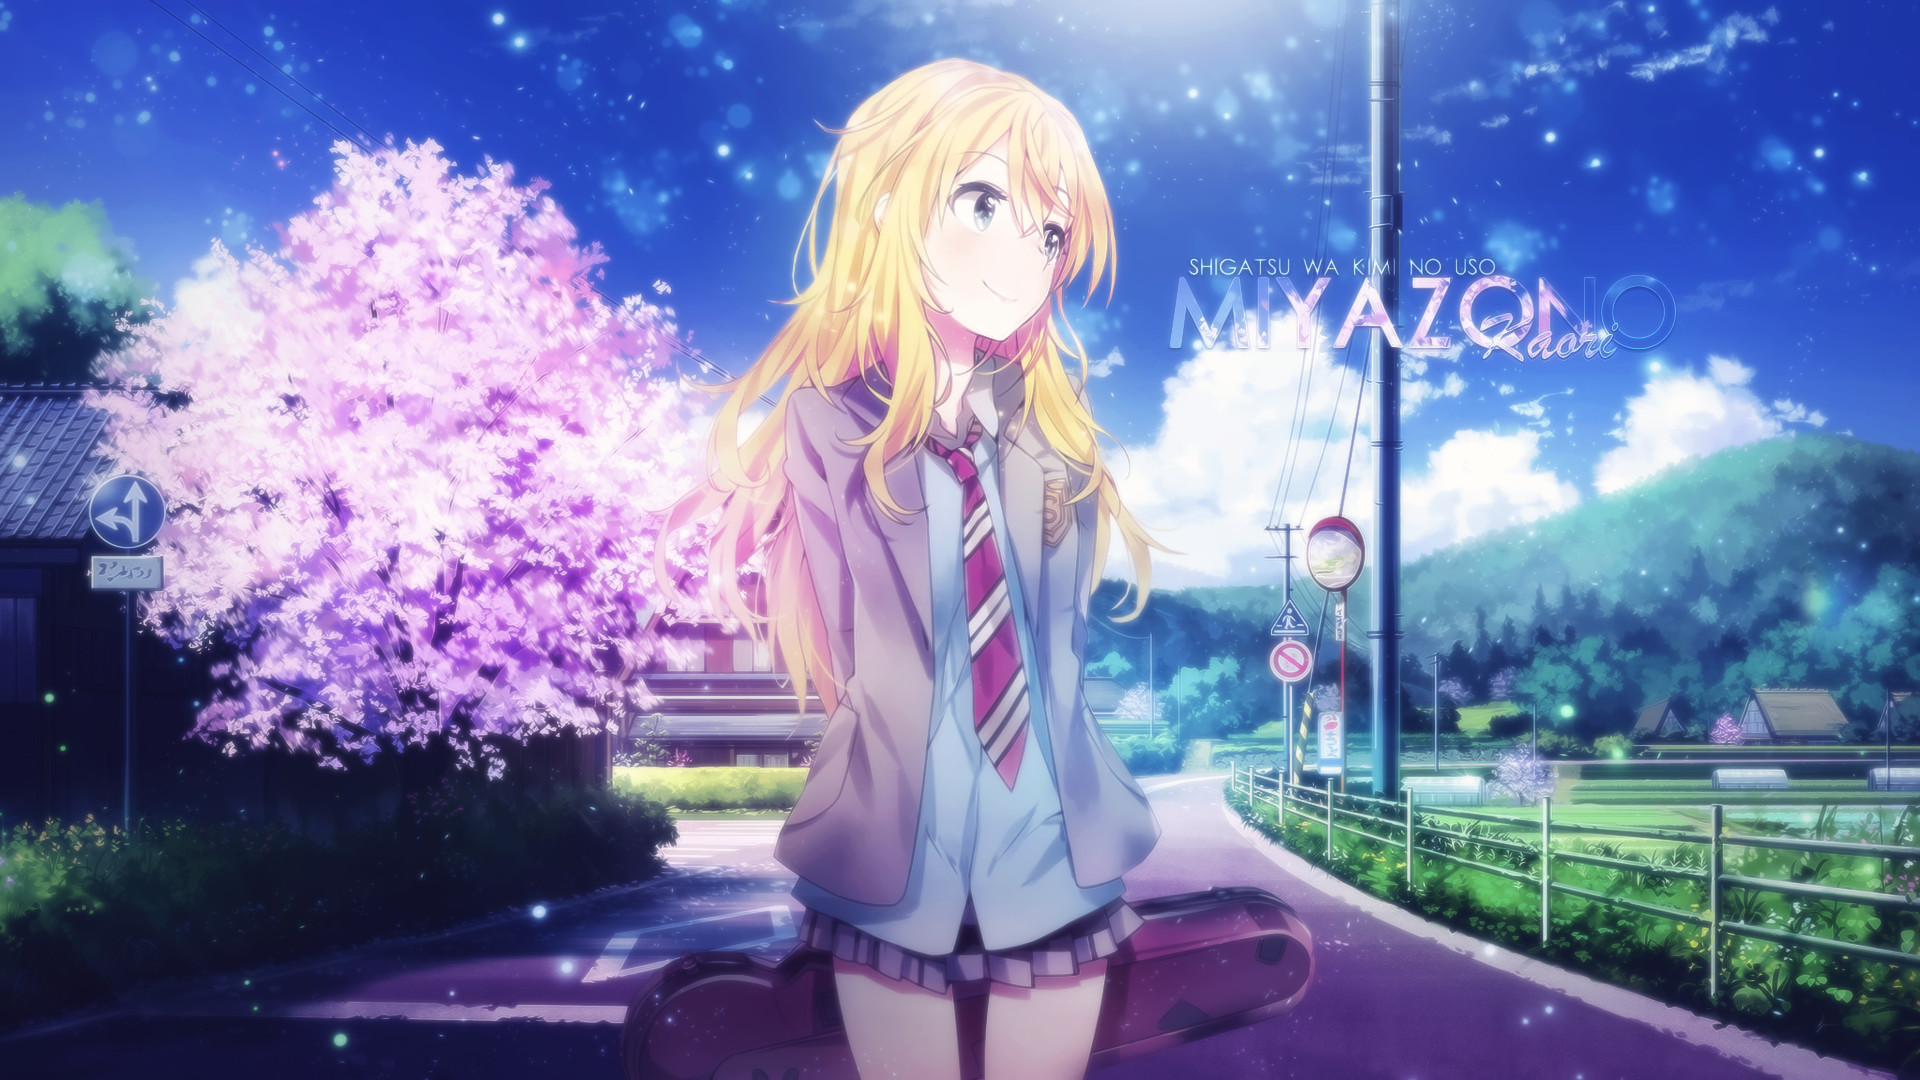 10 Best Anime Music Wallpaper 1920x1080 Full Hd 1920 1080: Anime Wallpapers For Laptops (65+ Images